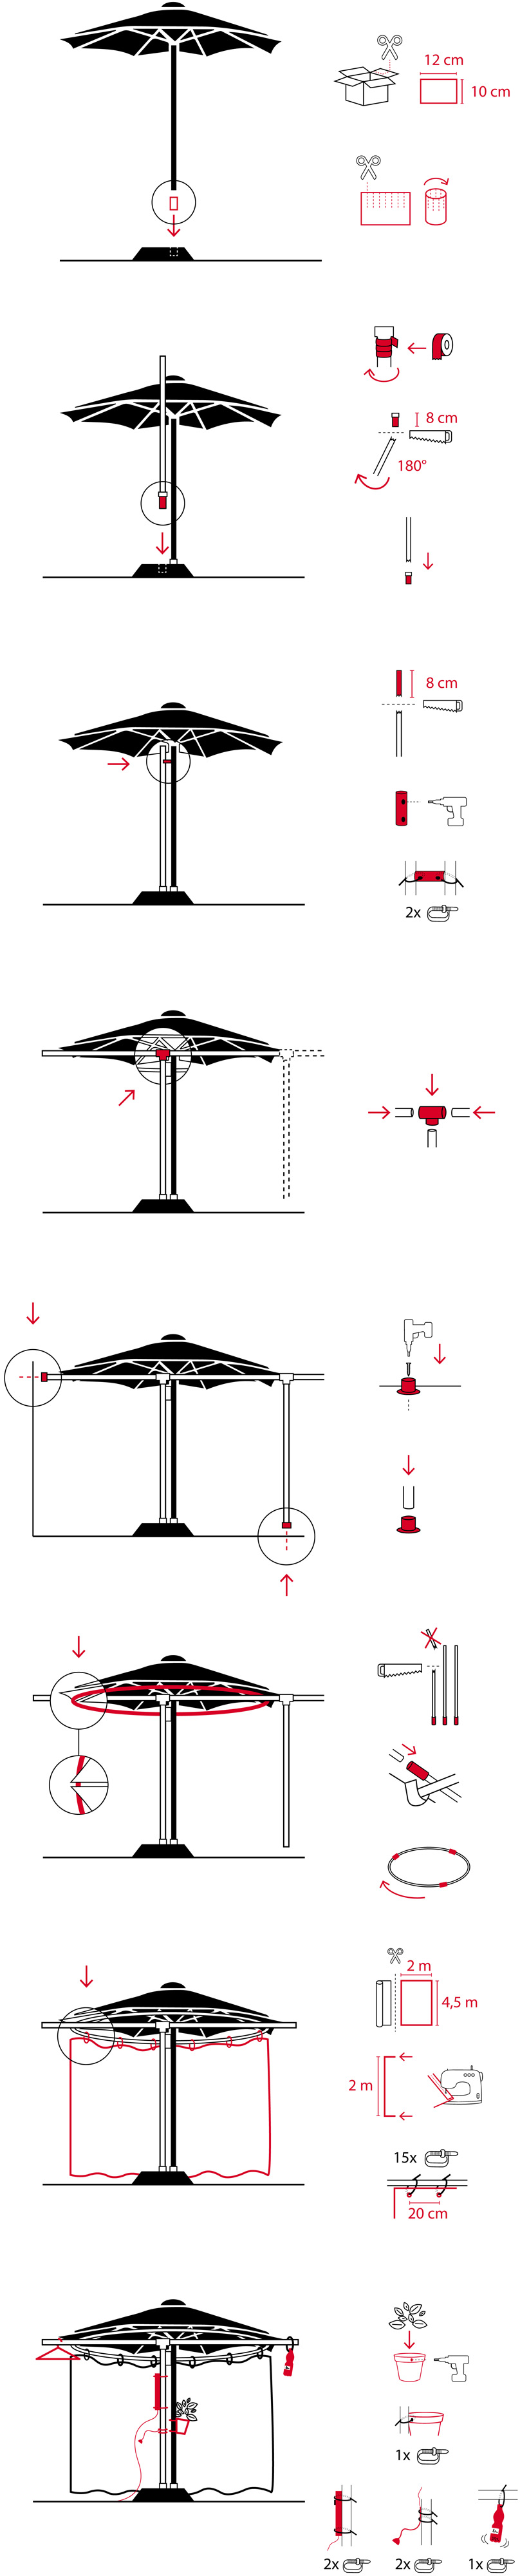 umbrella manual }